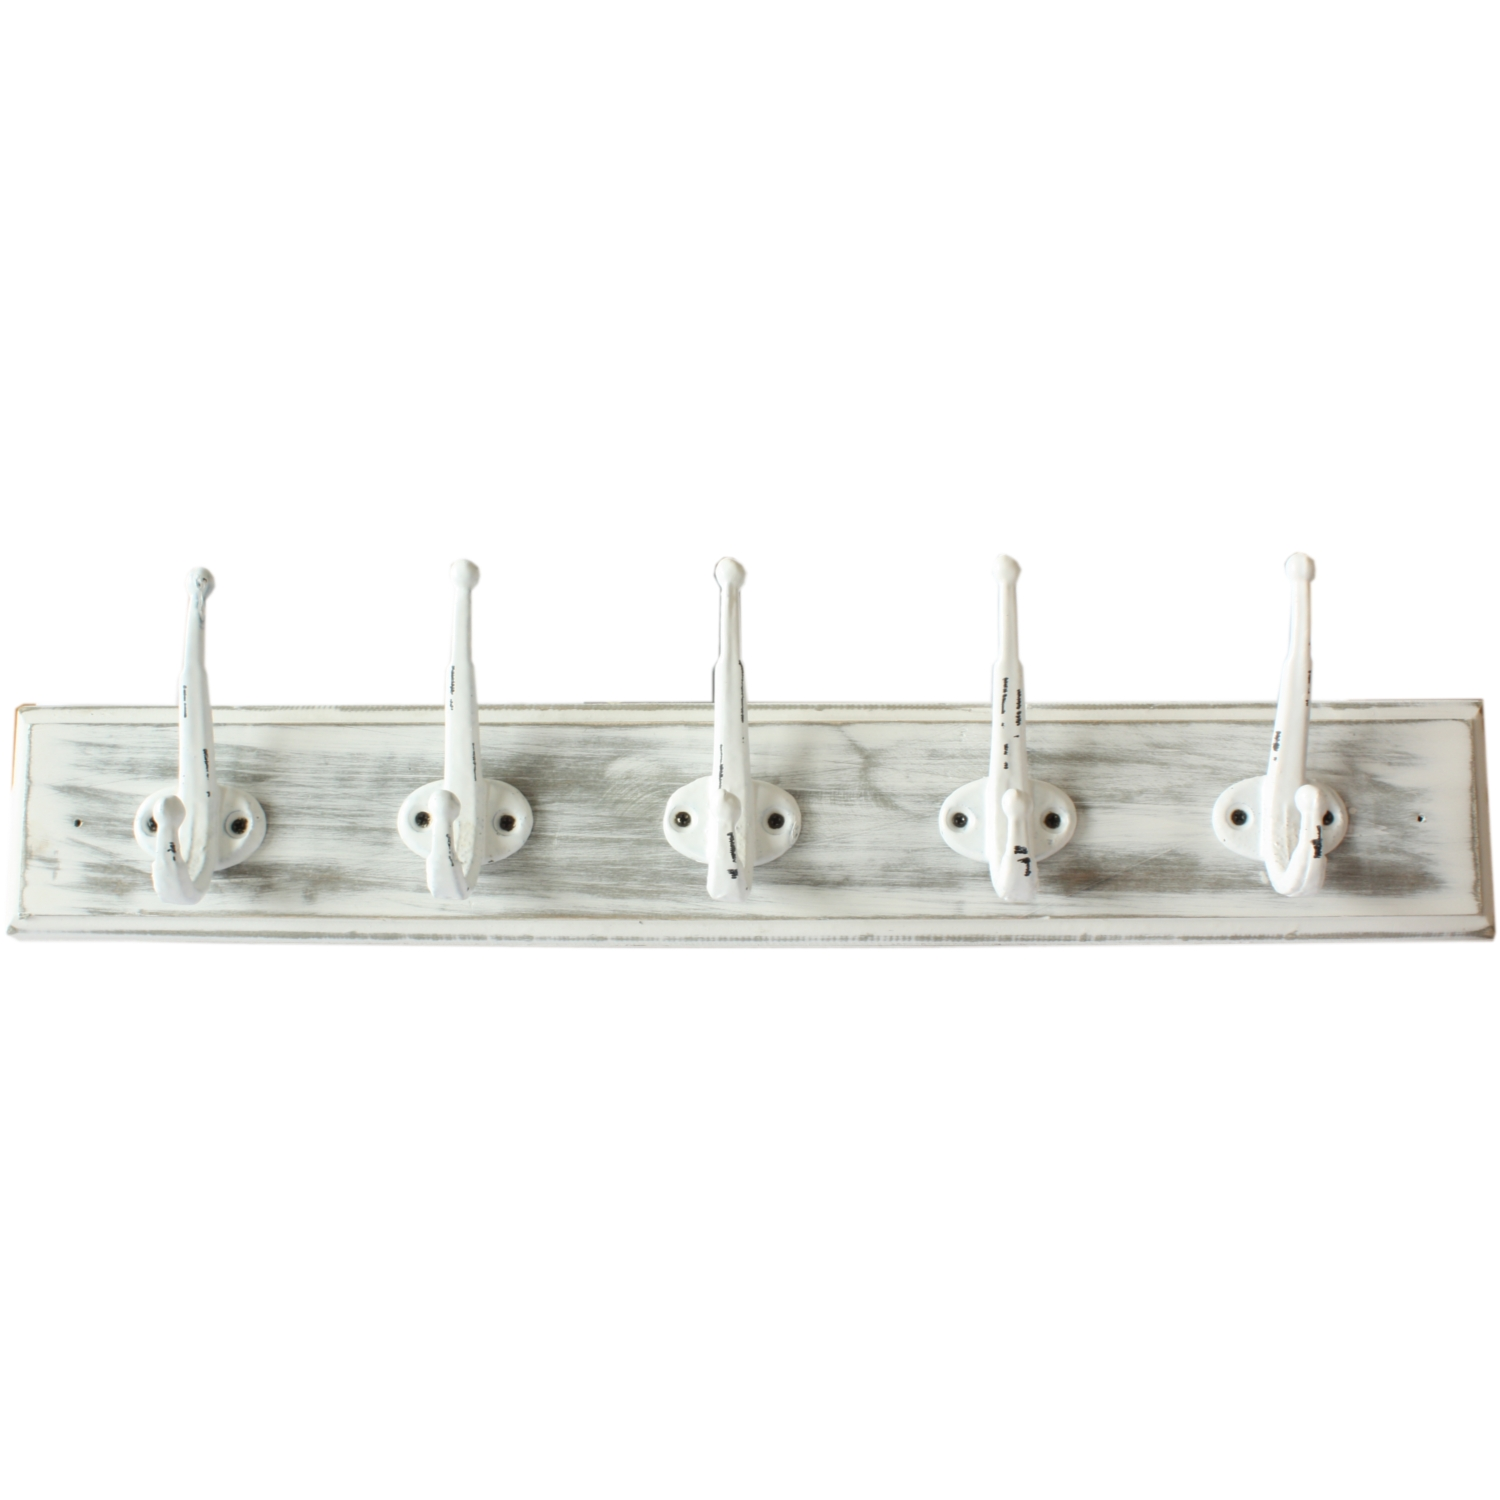 New England Wooden White Distressed 5 Hook Coat Rack Ebay: white wooden coat hooks